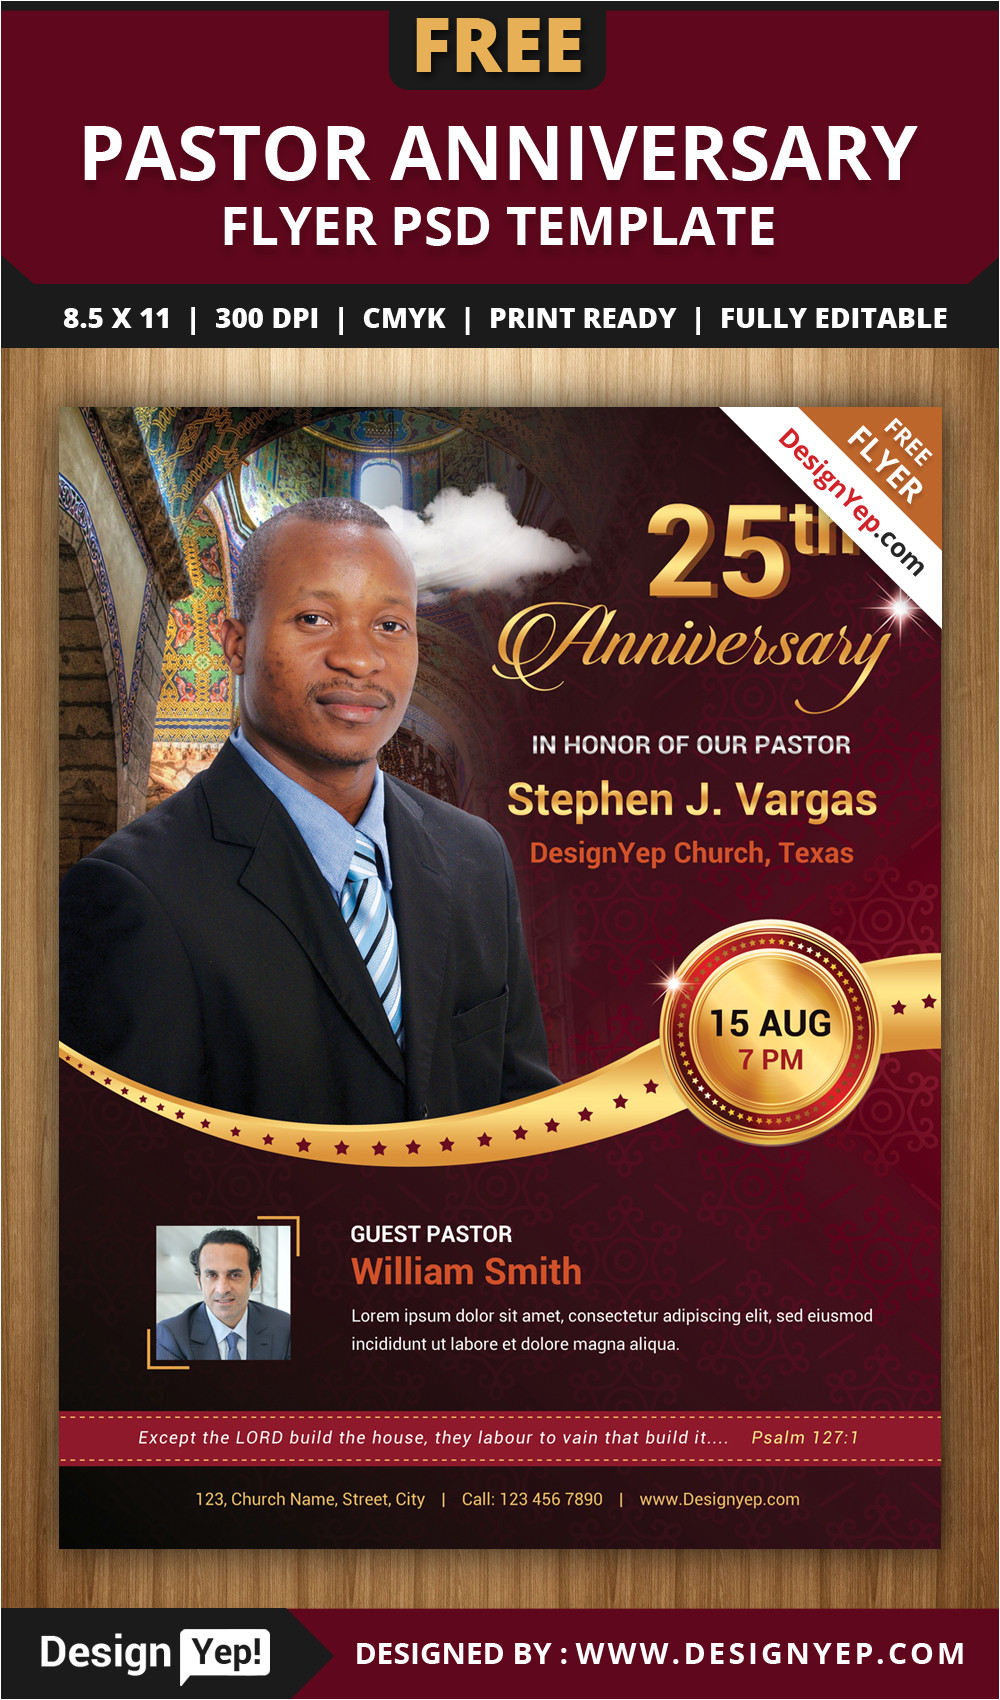 free pastor anniversary flyer psd template